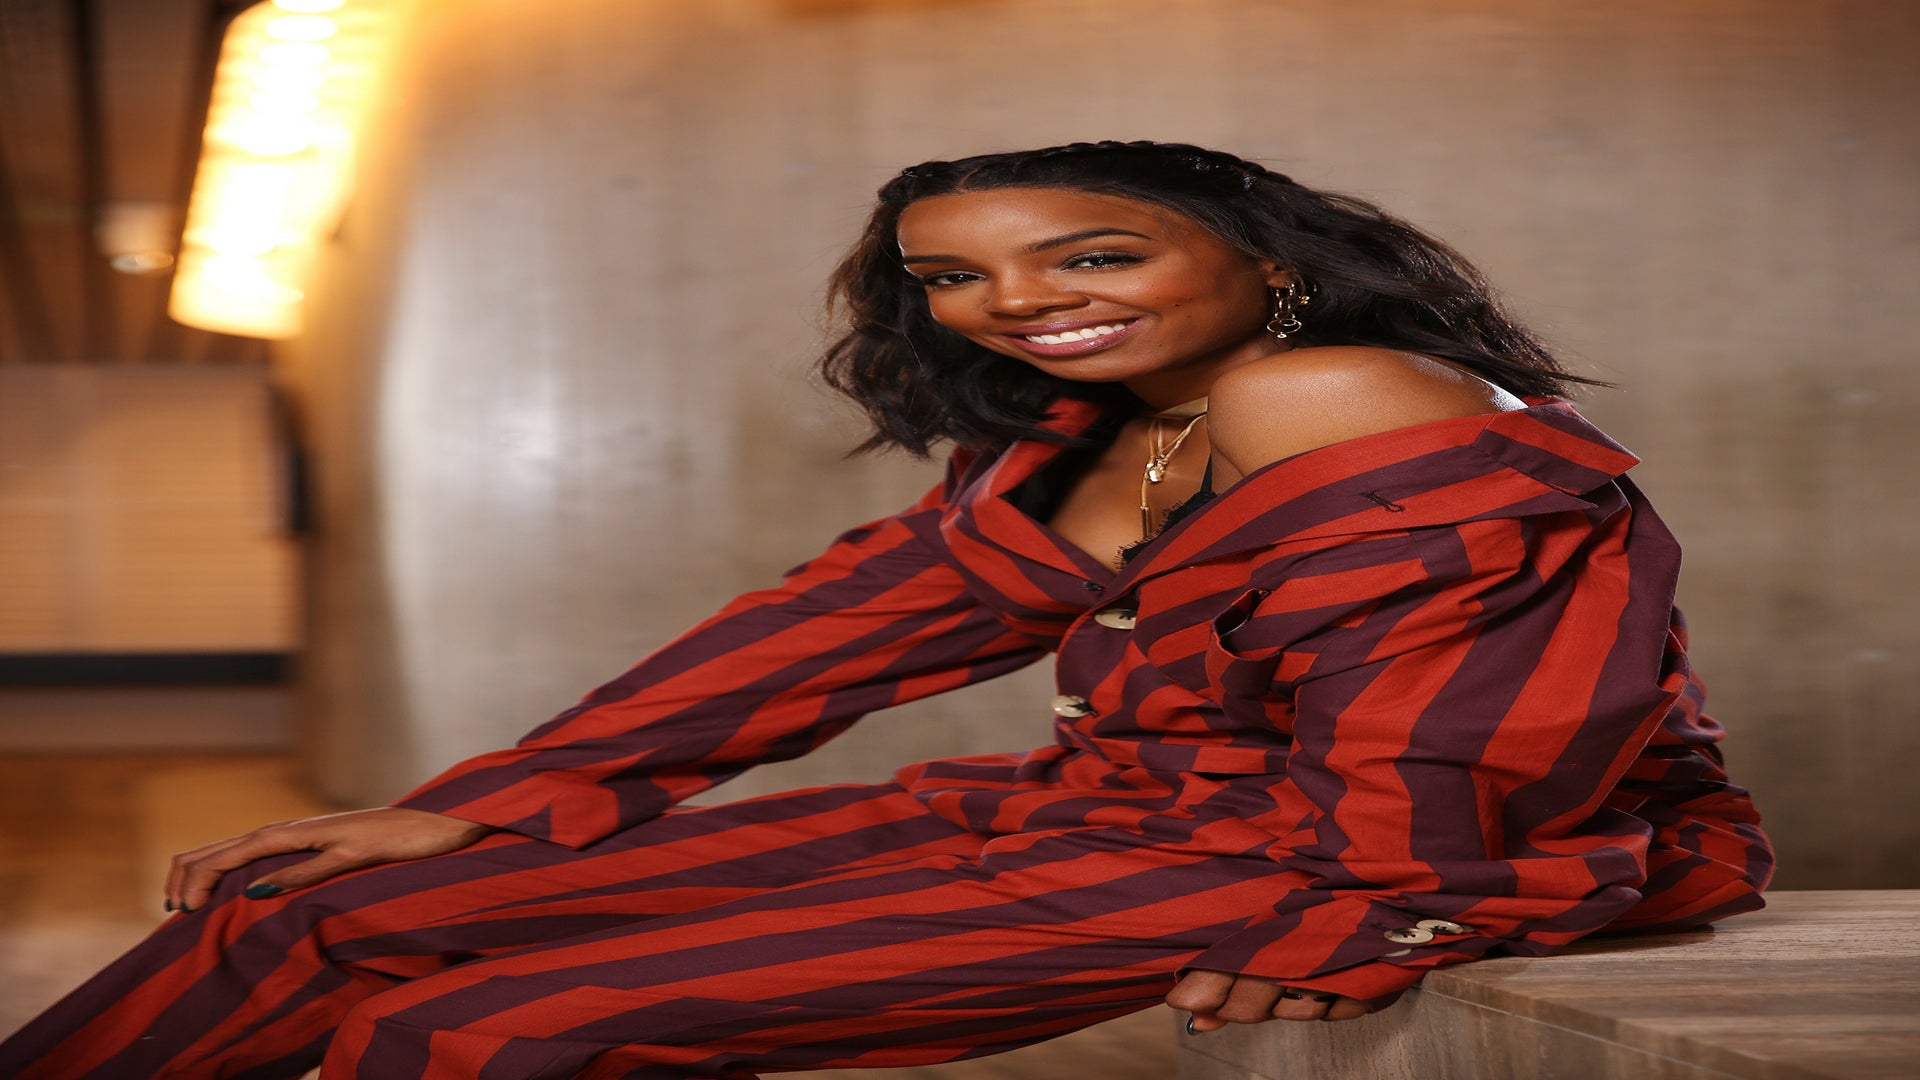 Kelly Rowland Isn't Playing, New Album Gets Production From Syd